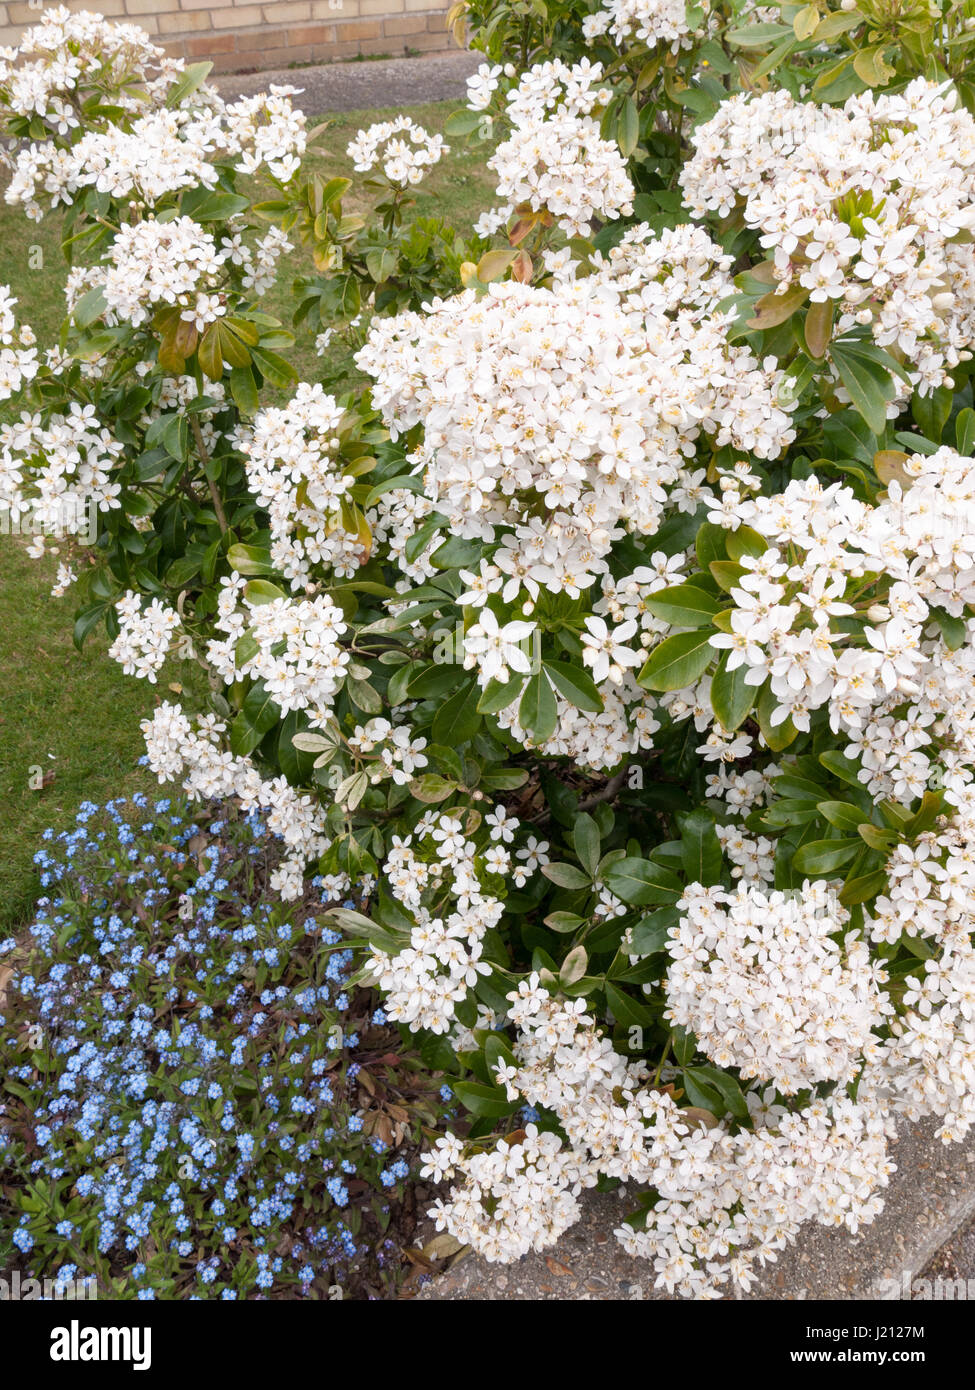 Beautiful Bush Of Bunches Of White Flower Heads In Spring Light With